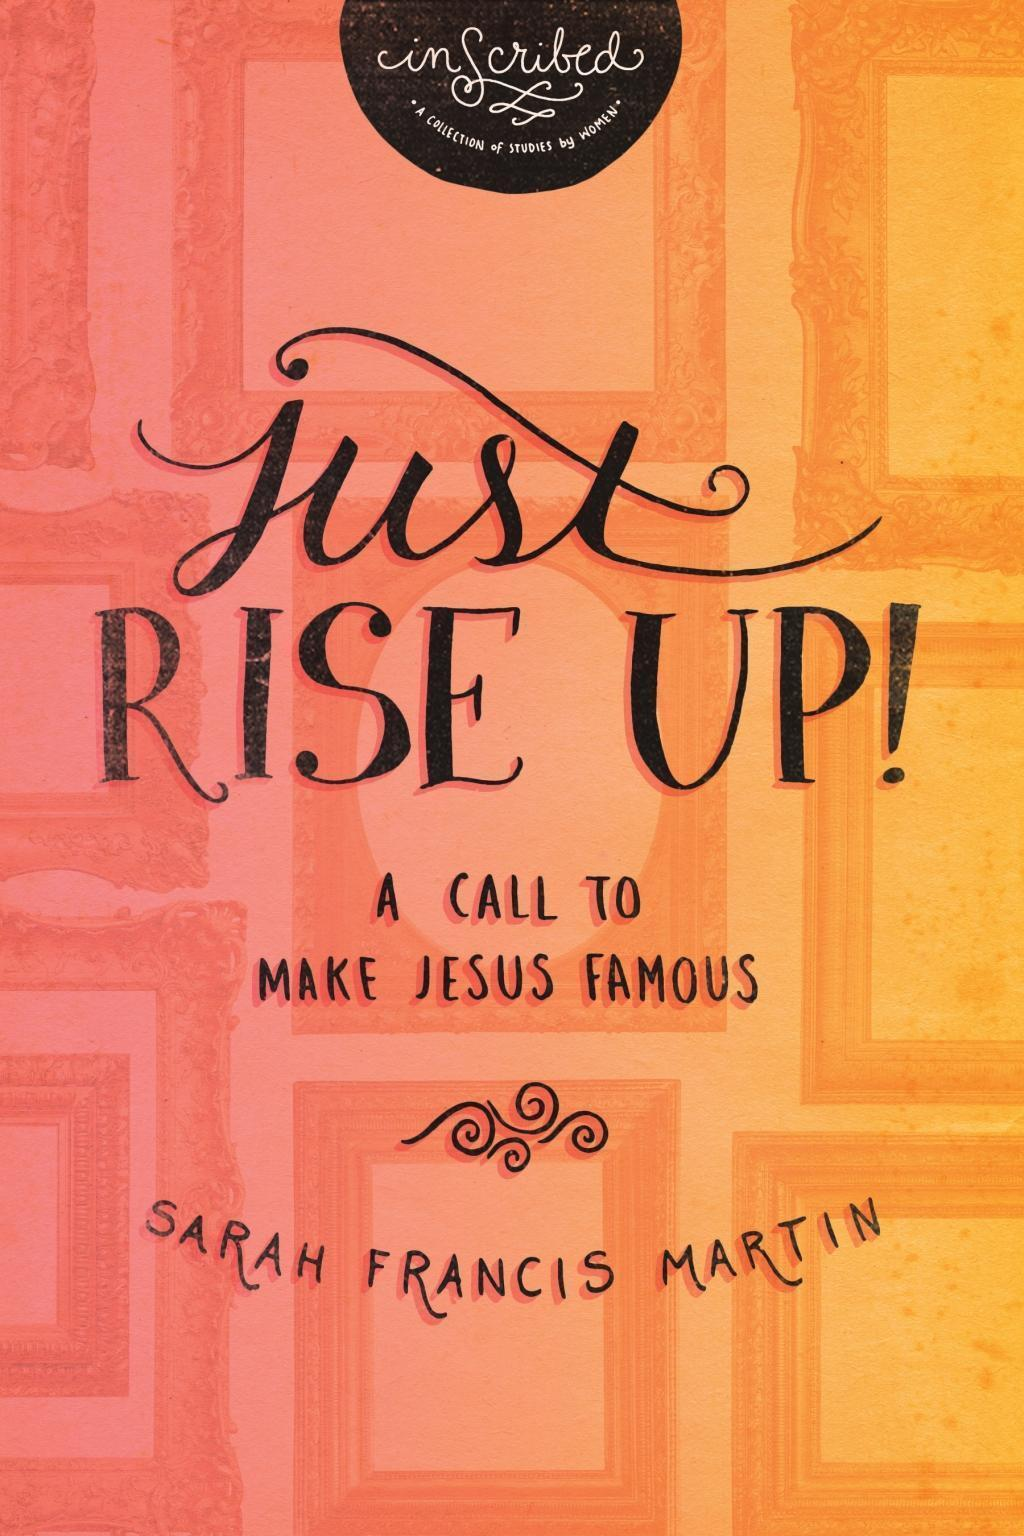 Just RISE UP!